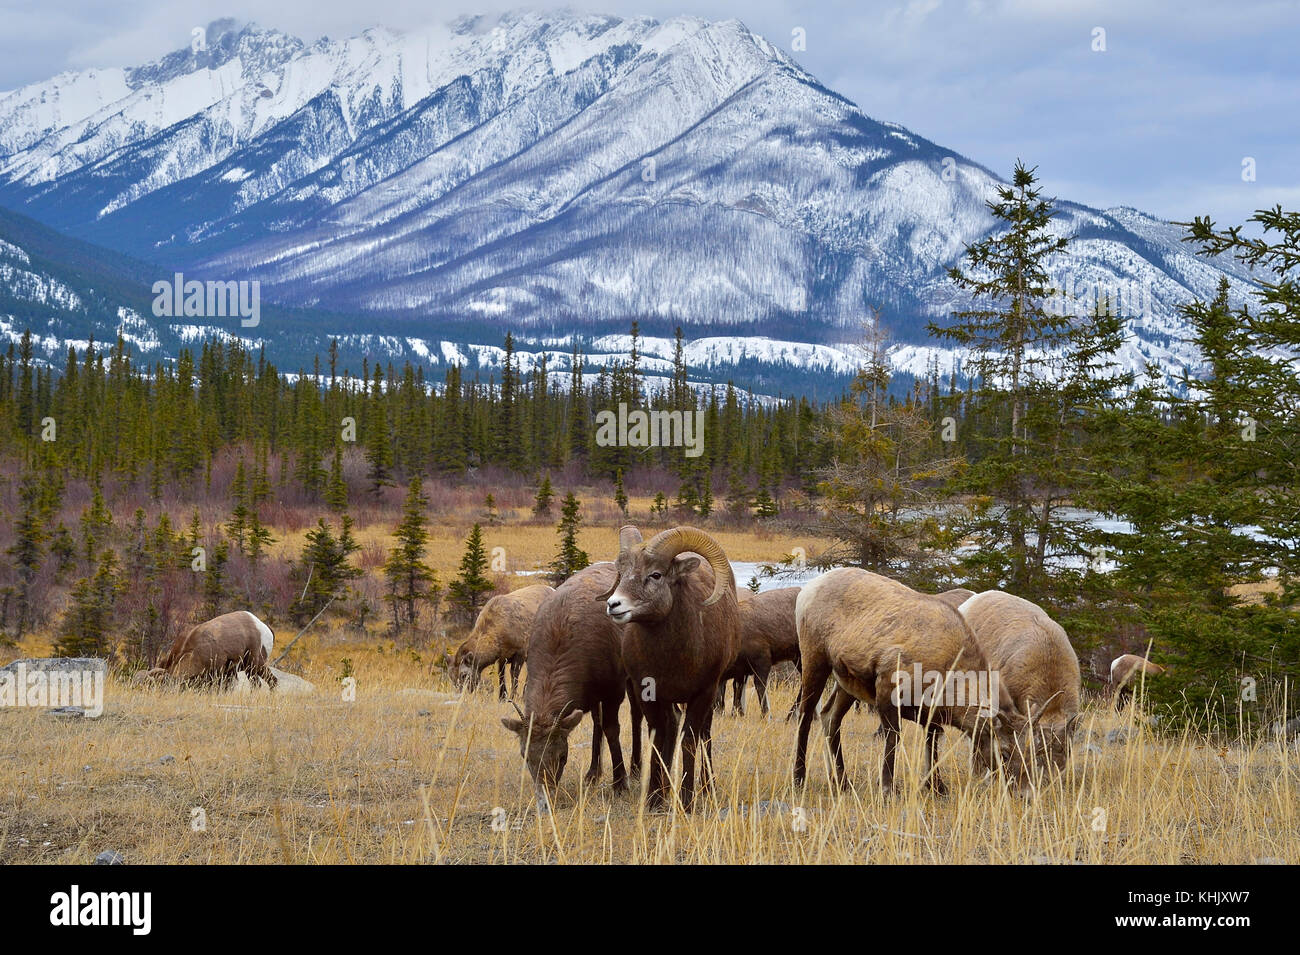 A herd of wild Bighorn Sheep (Ovis canadensis) foraging in the brown grass in a majestic rocky mountain landscape - Stock Image